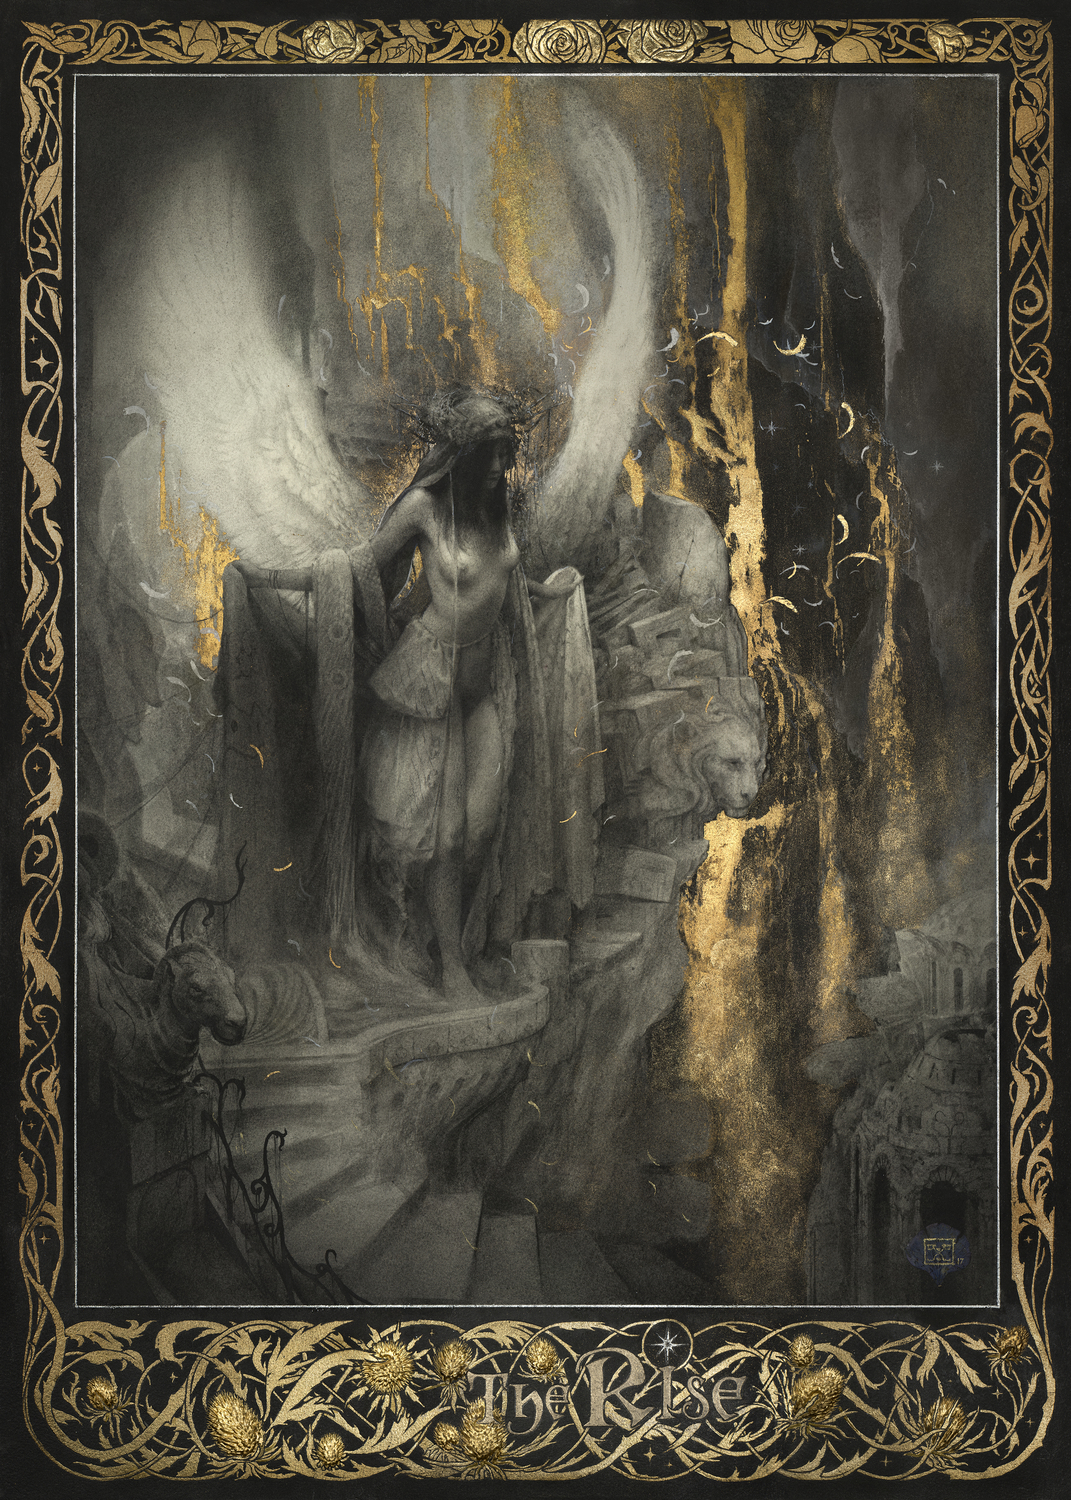 The Rise Artwork by Yoann Lossel